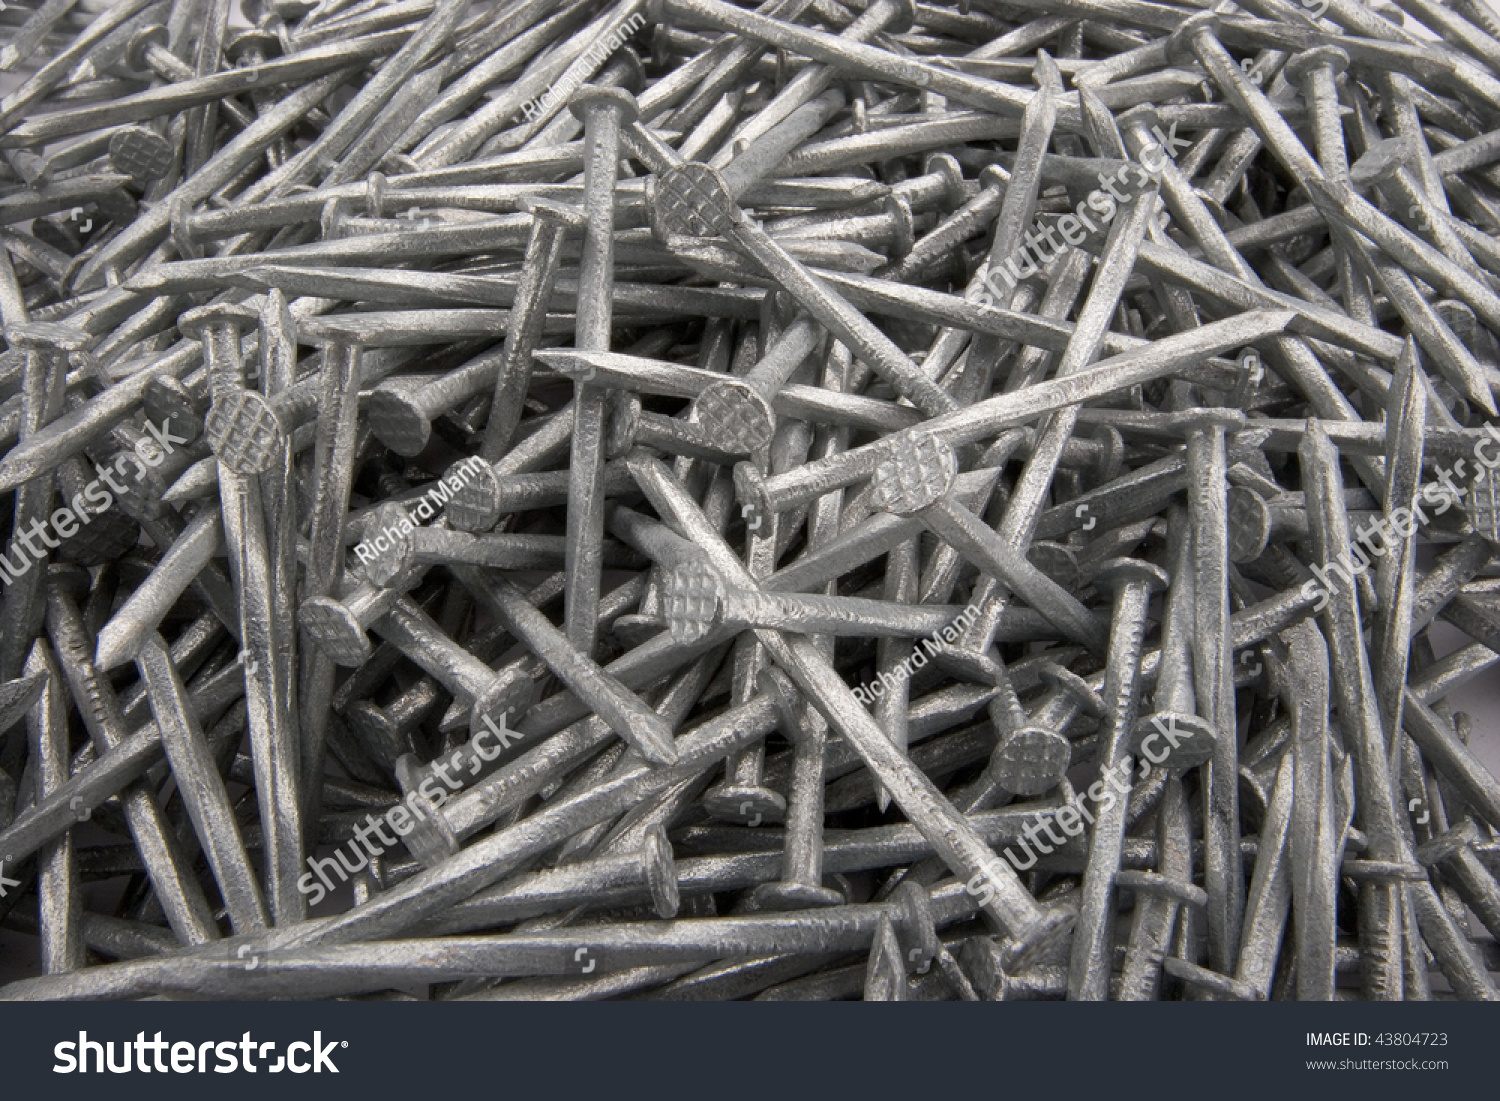 Carpenters Nails Stock Photo 43804723 Shutterstock